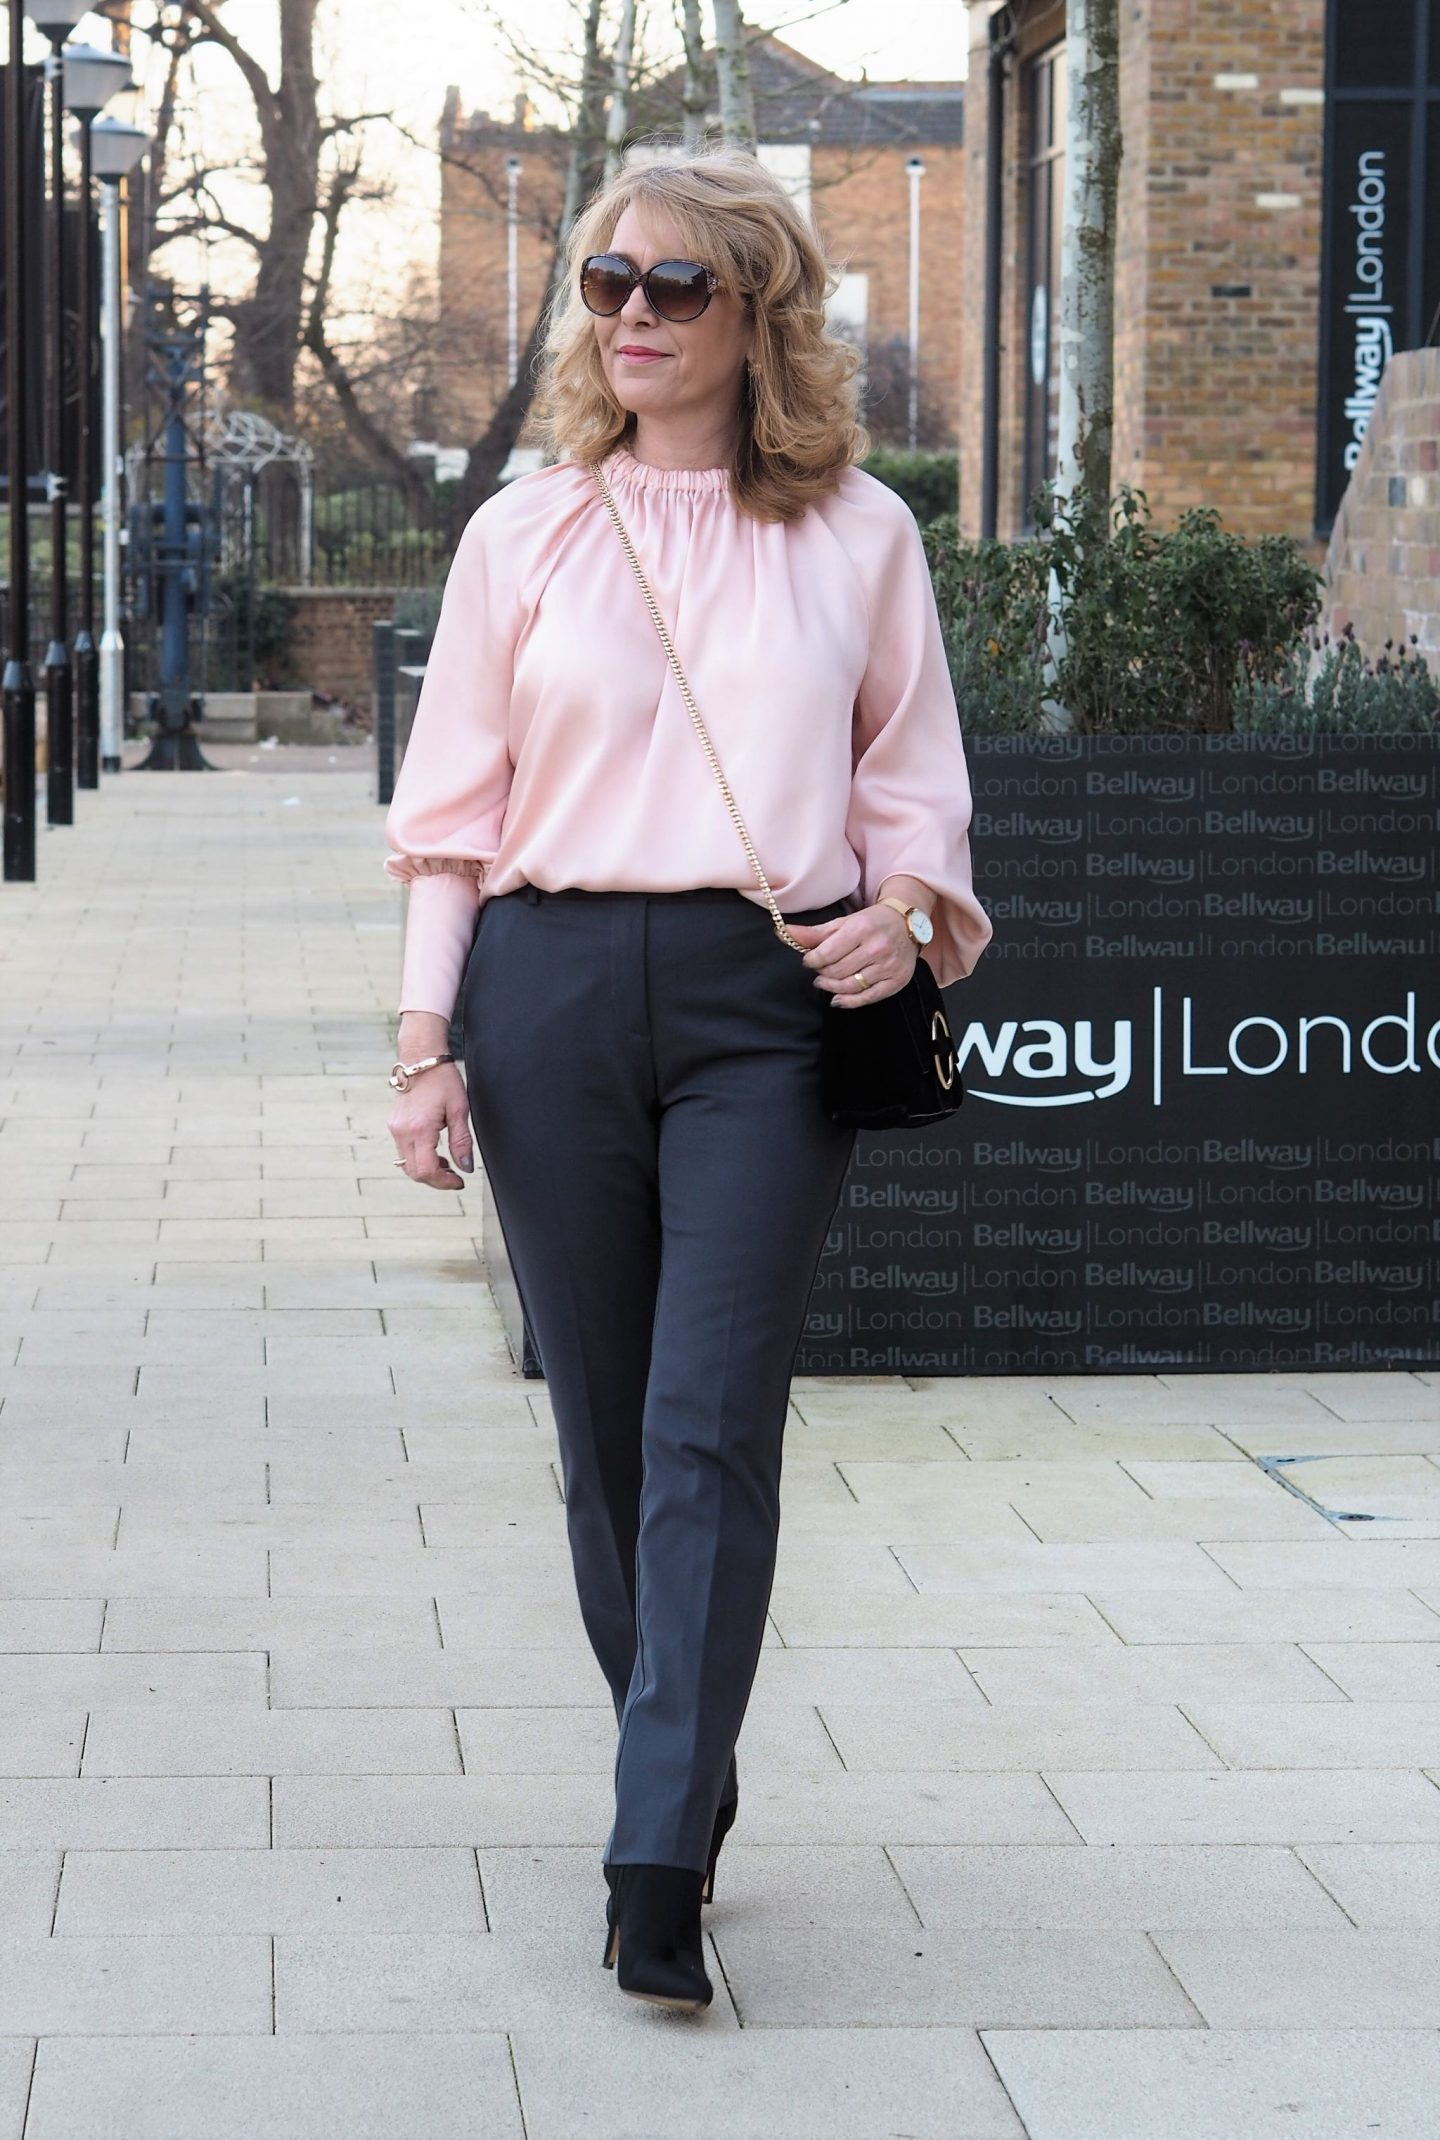 This top is from the Holly Willoughby collection for Marks and Spencer. Every time I open up any of my social media platforms someone is talking about or wearing something from Holly.